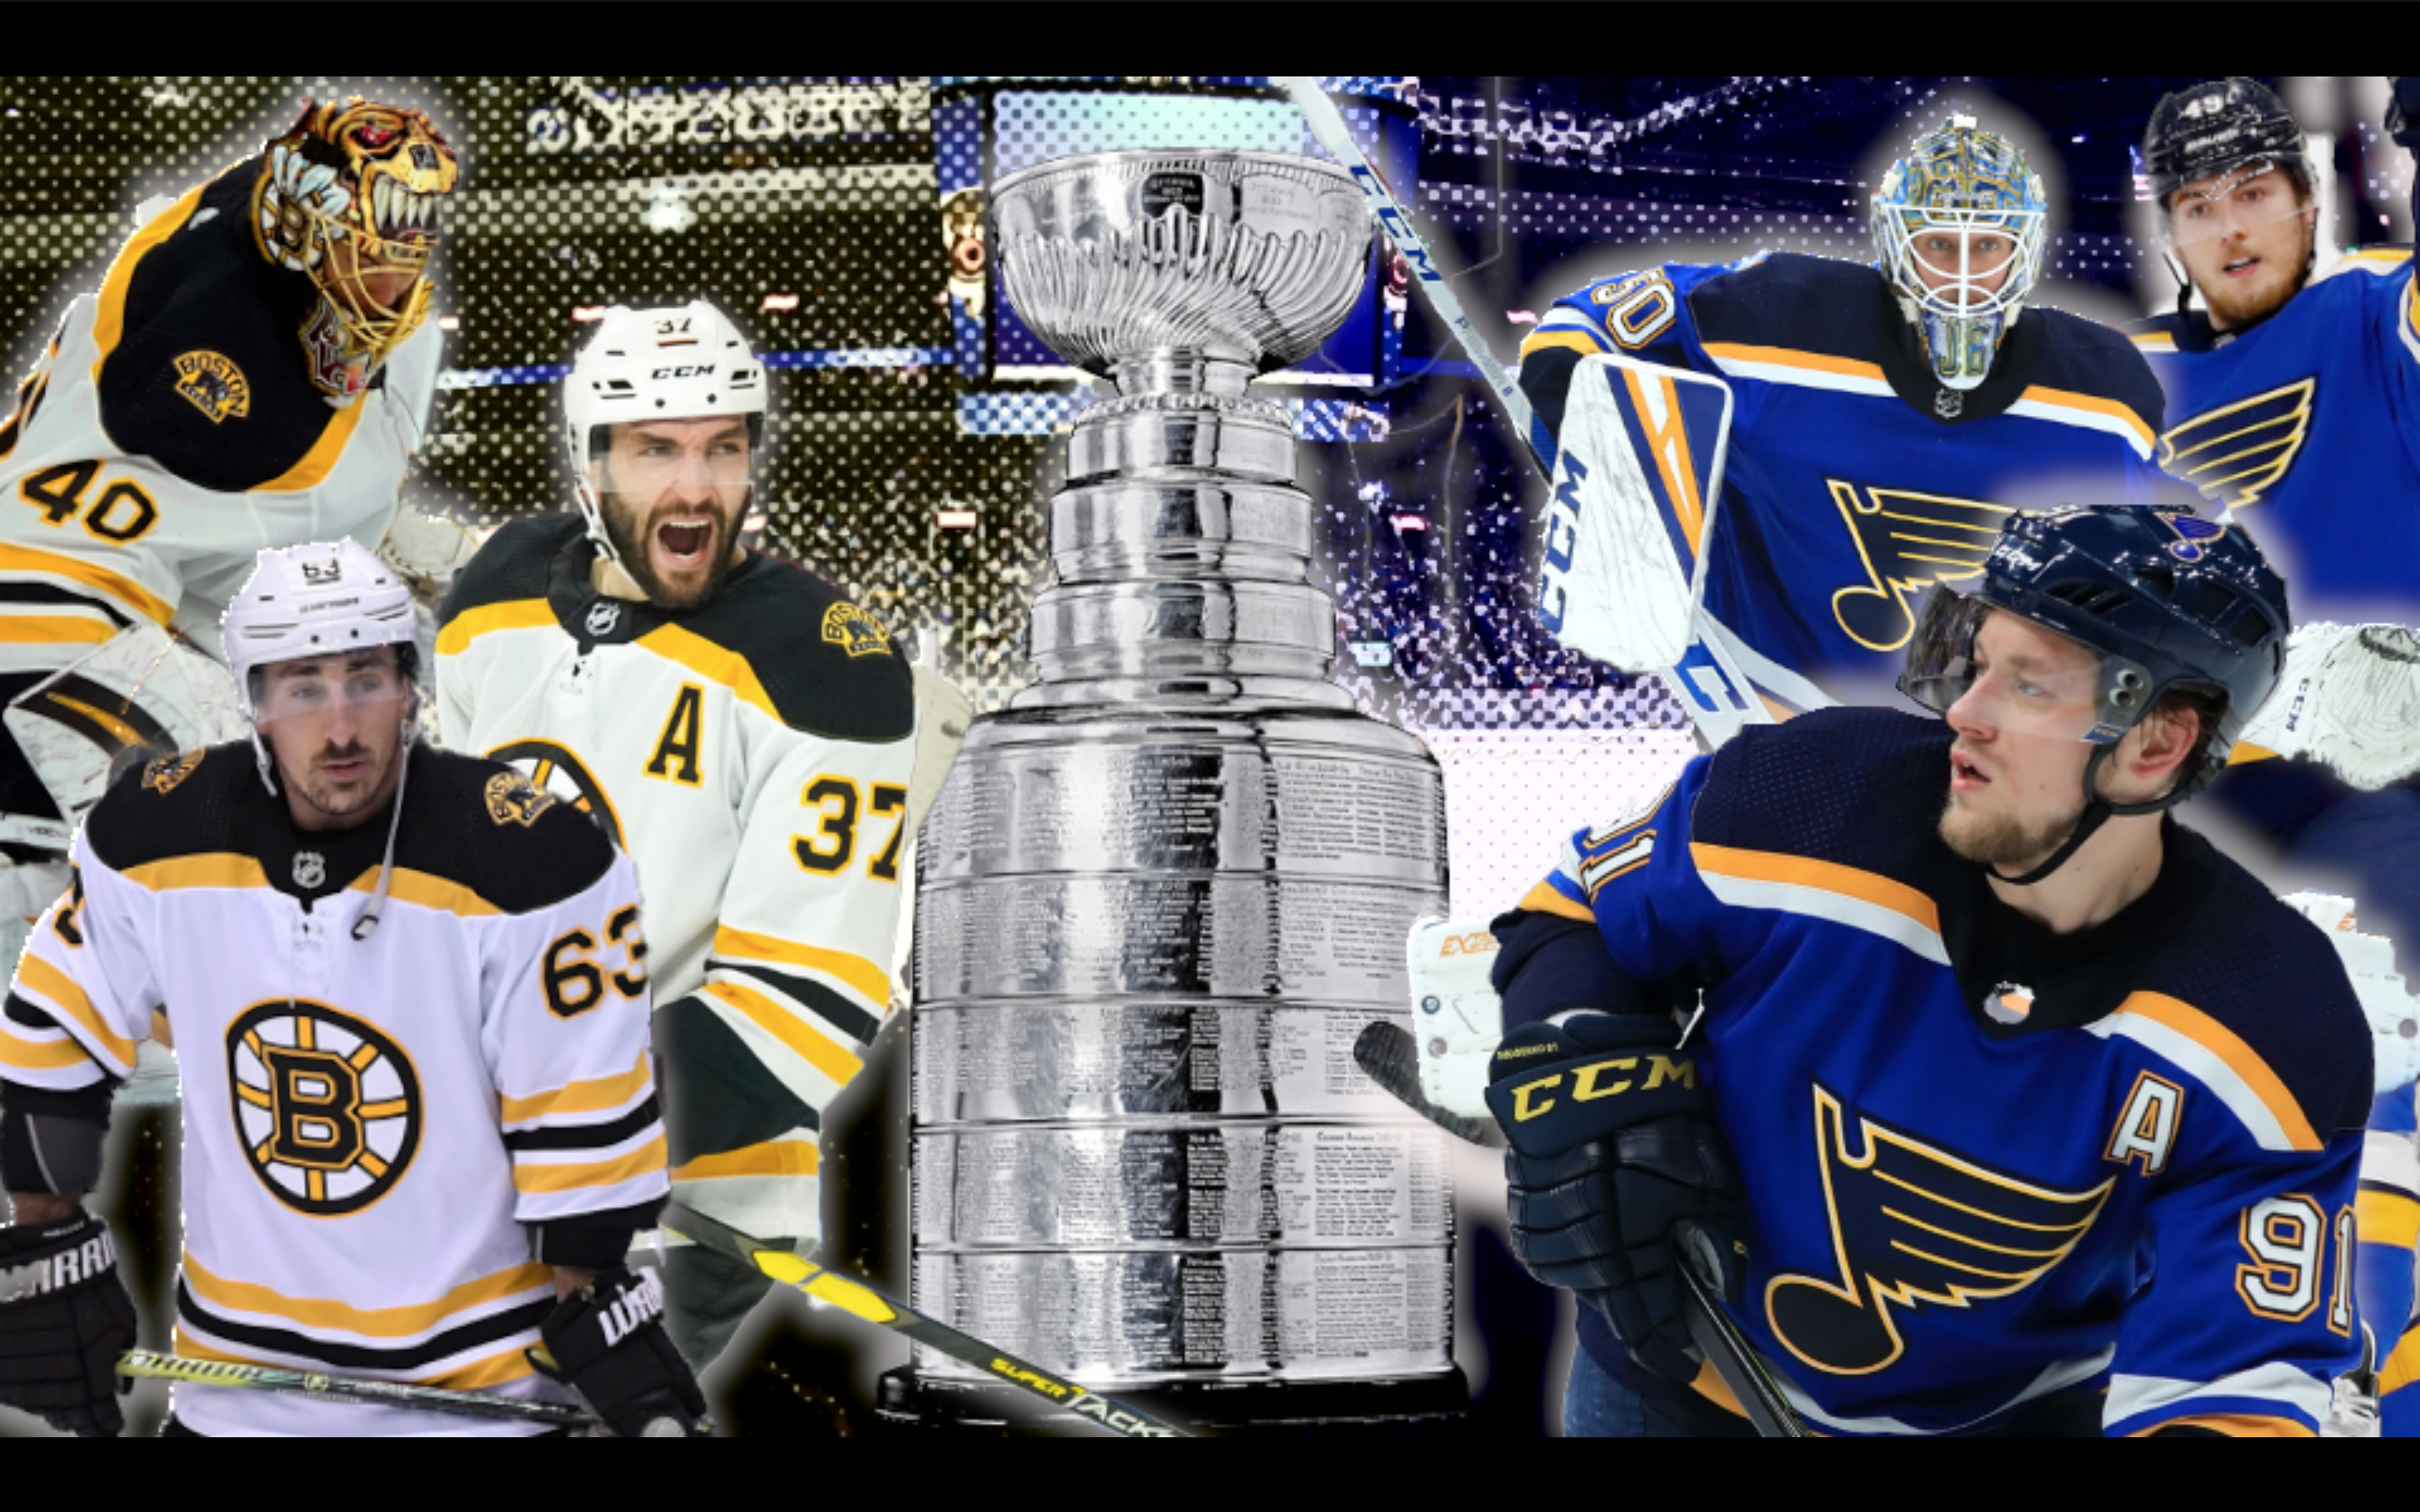 Bildresultat för stanley cup final 2019 bruins